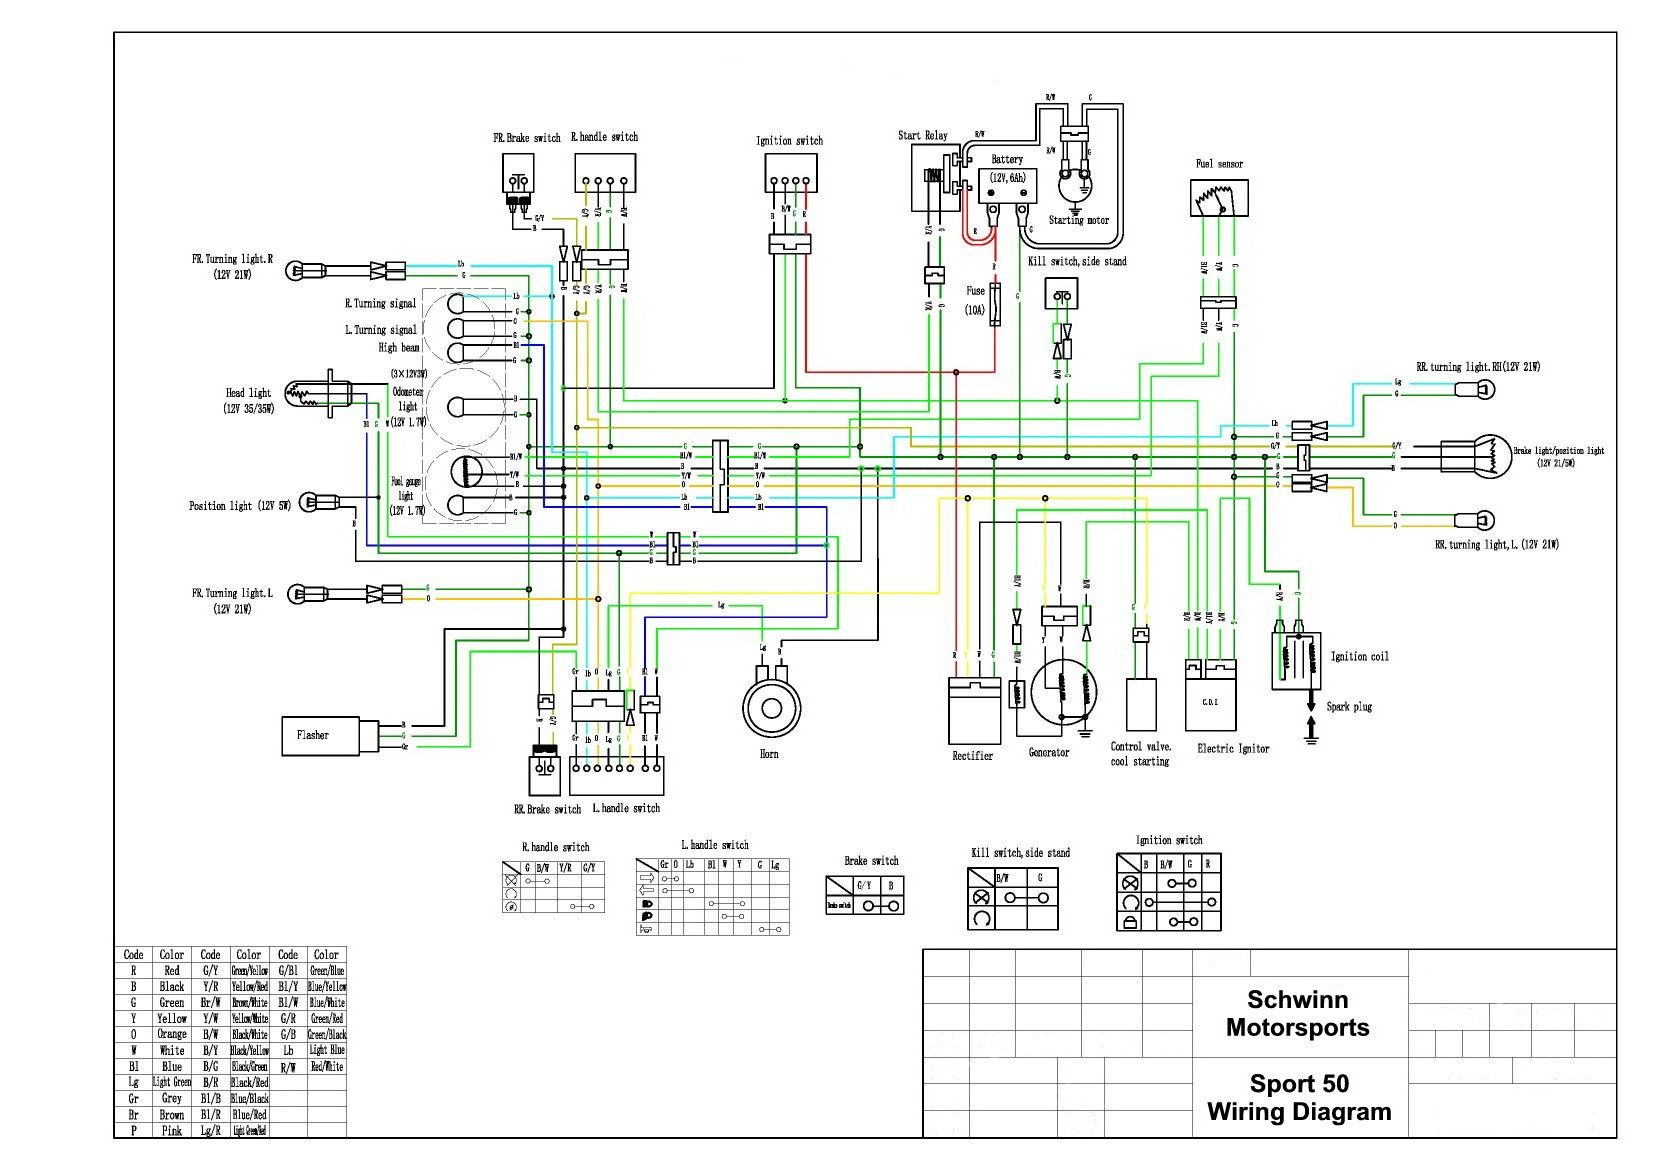 13 Clever Electrical Wiring Diagrams For Dummies For You Electrical Wiring Diagram Mobility Scooter Electric Scooter